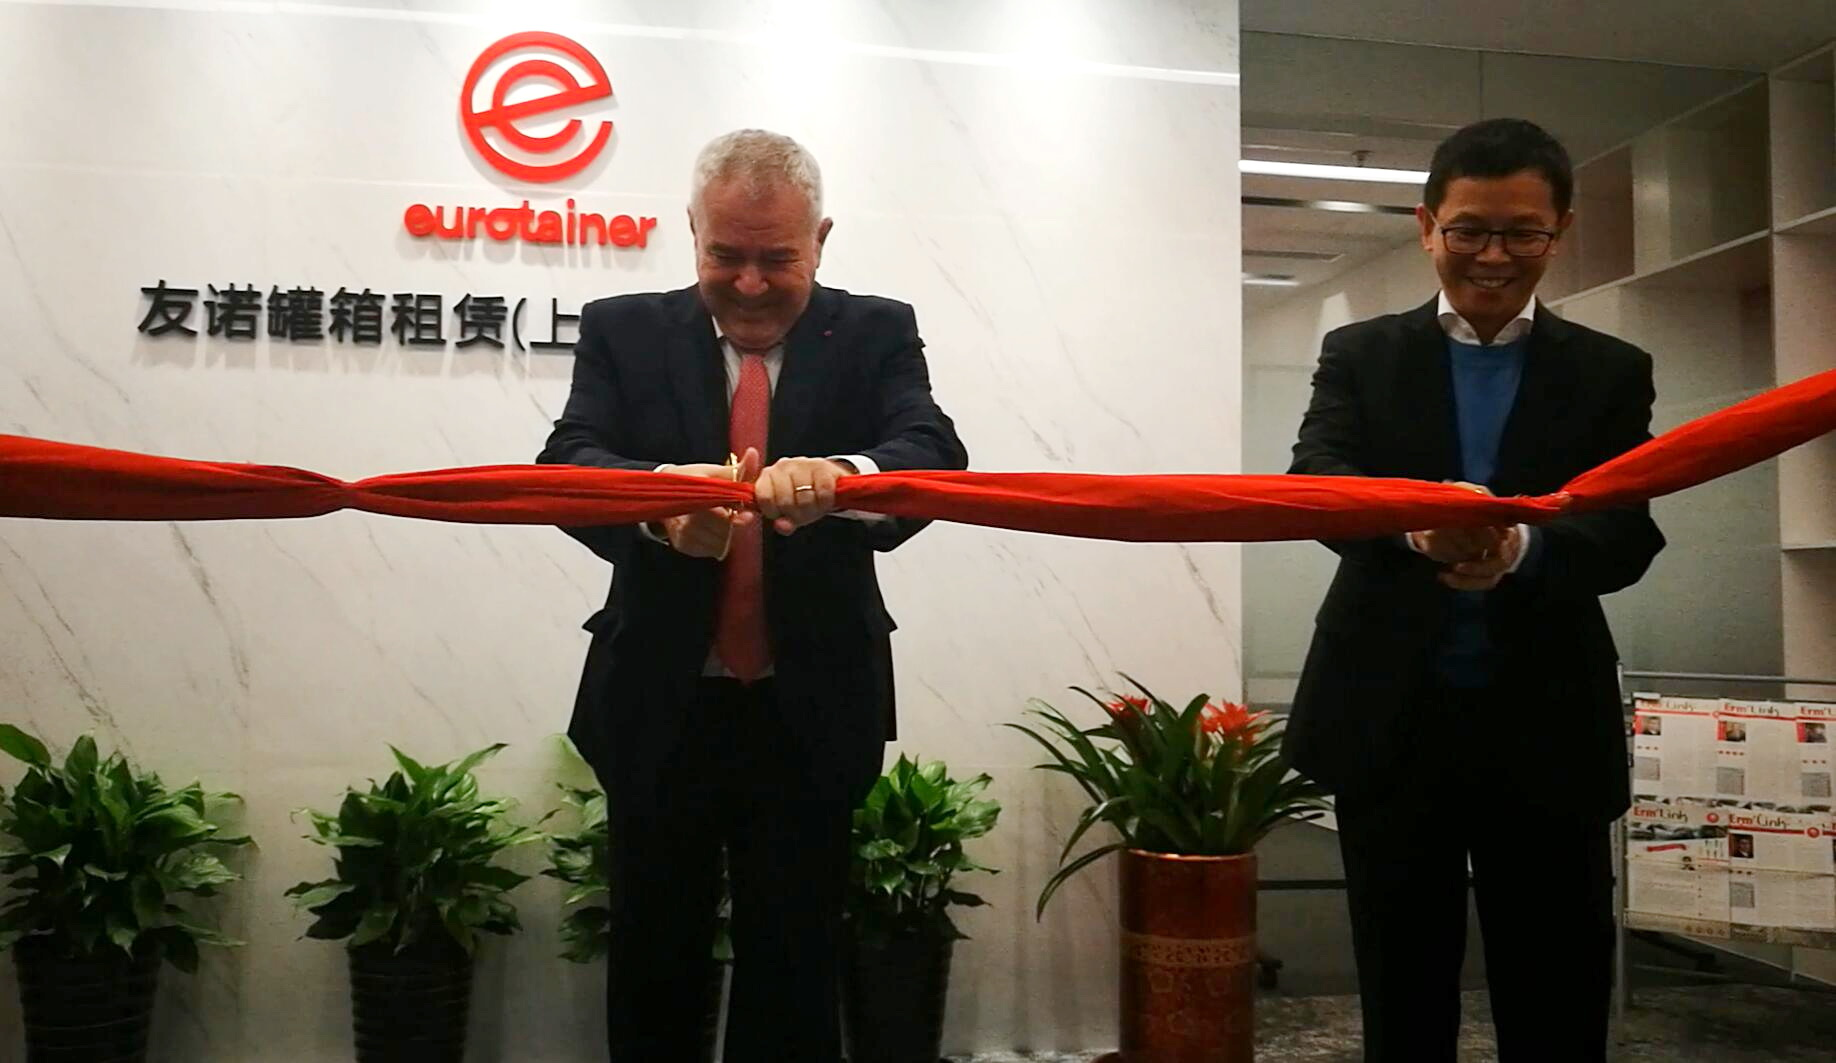 Business growth in China drives move to larger office in Shanghai